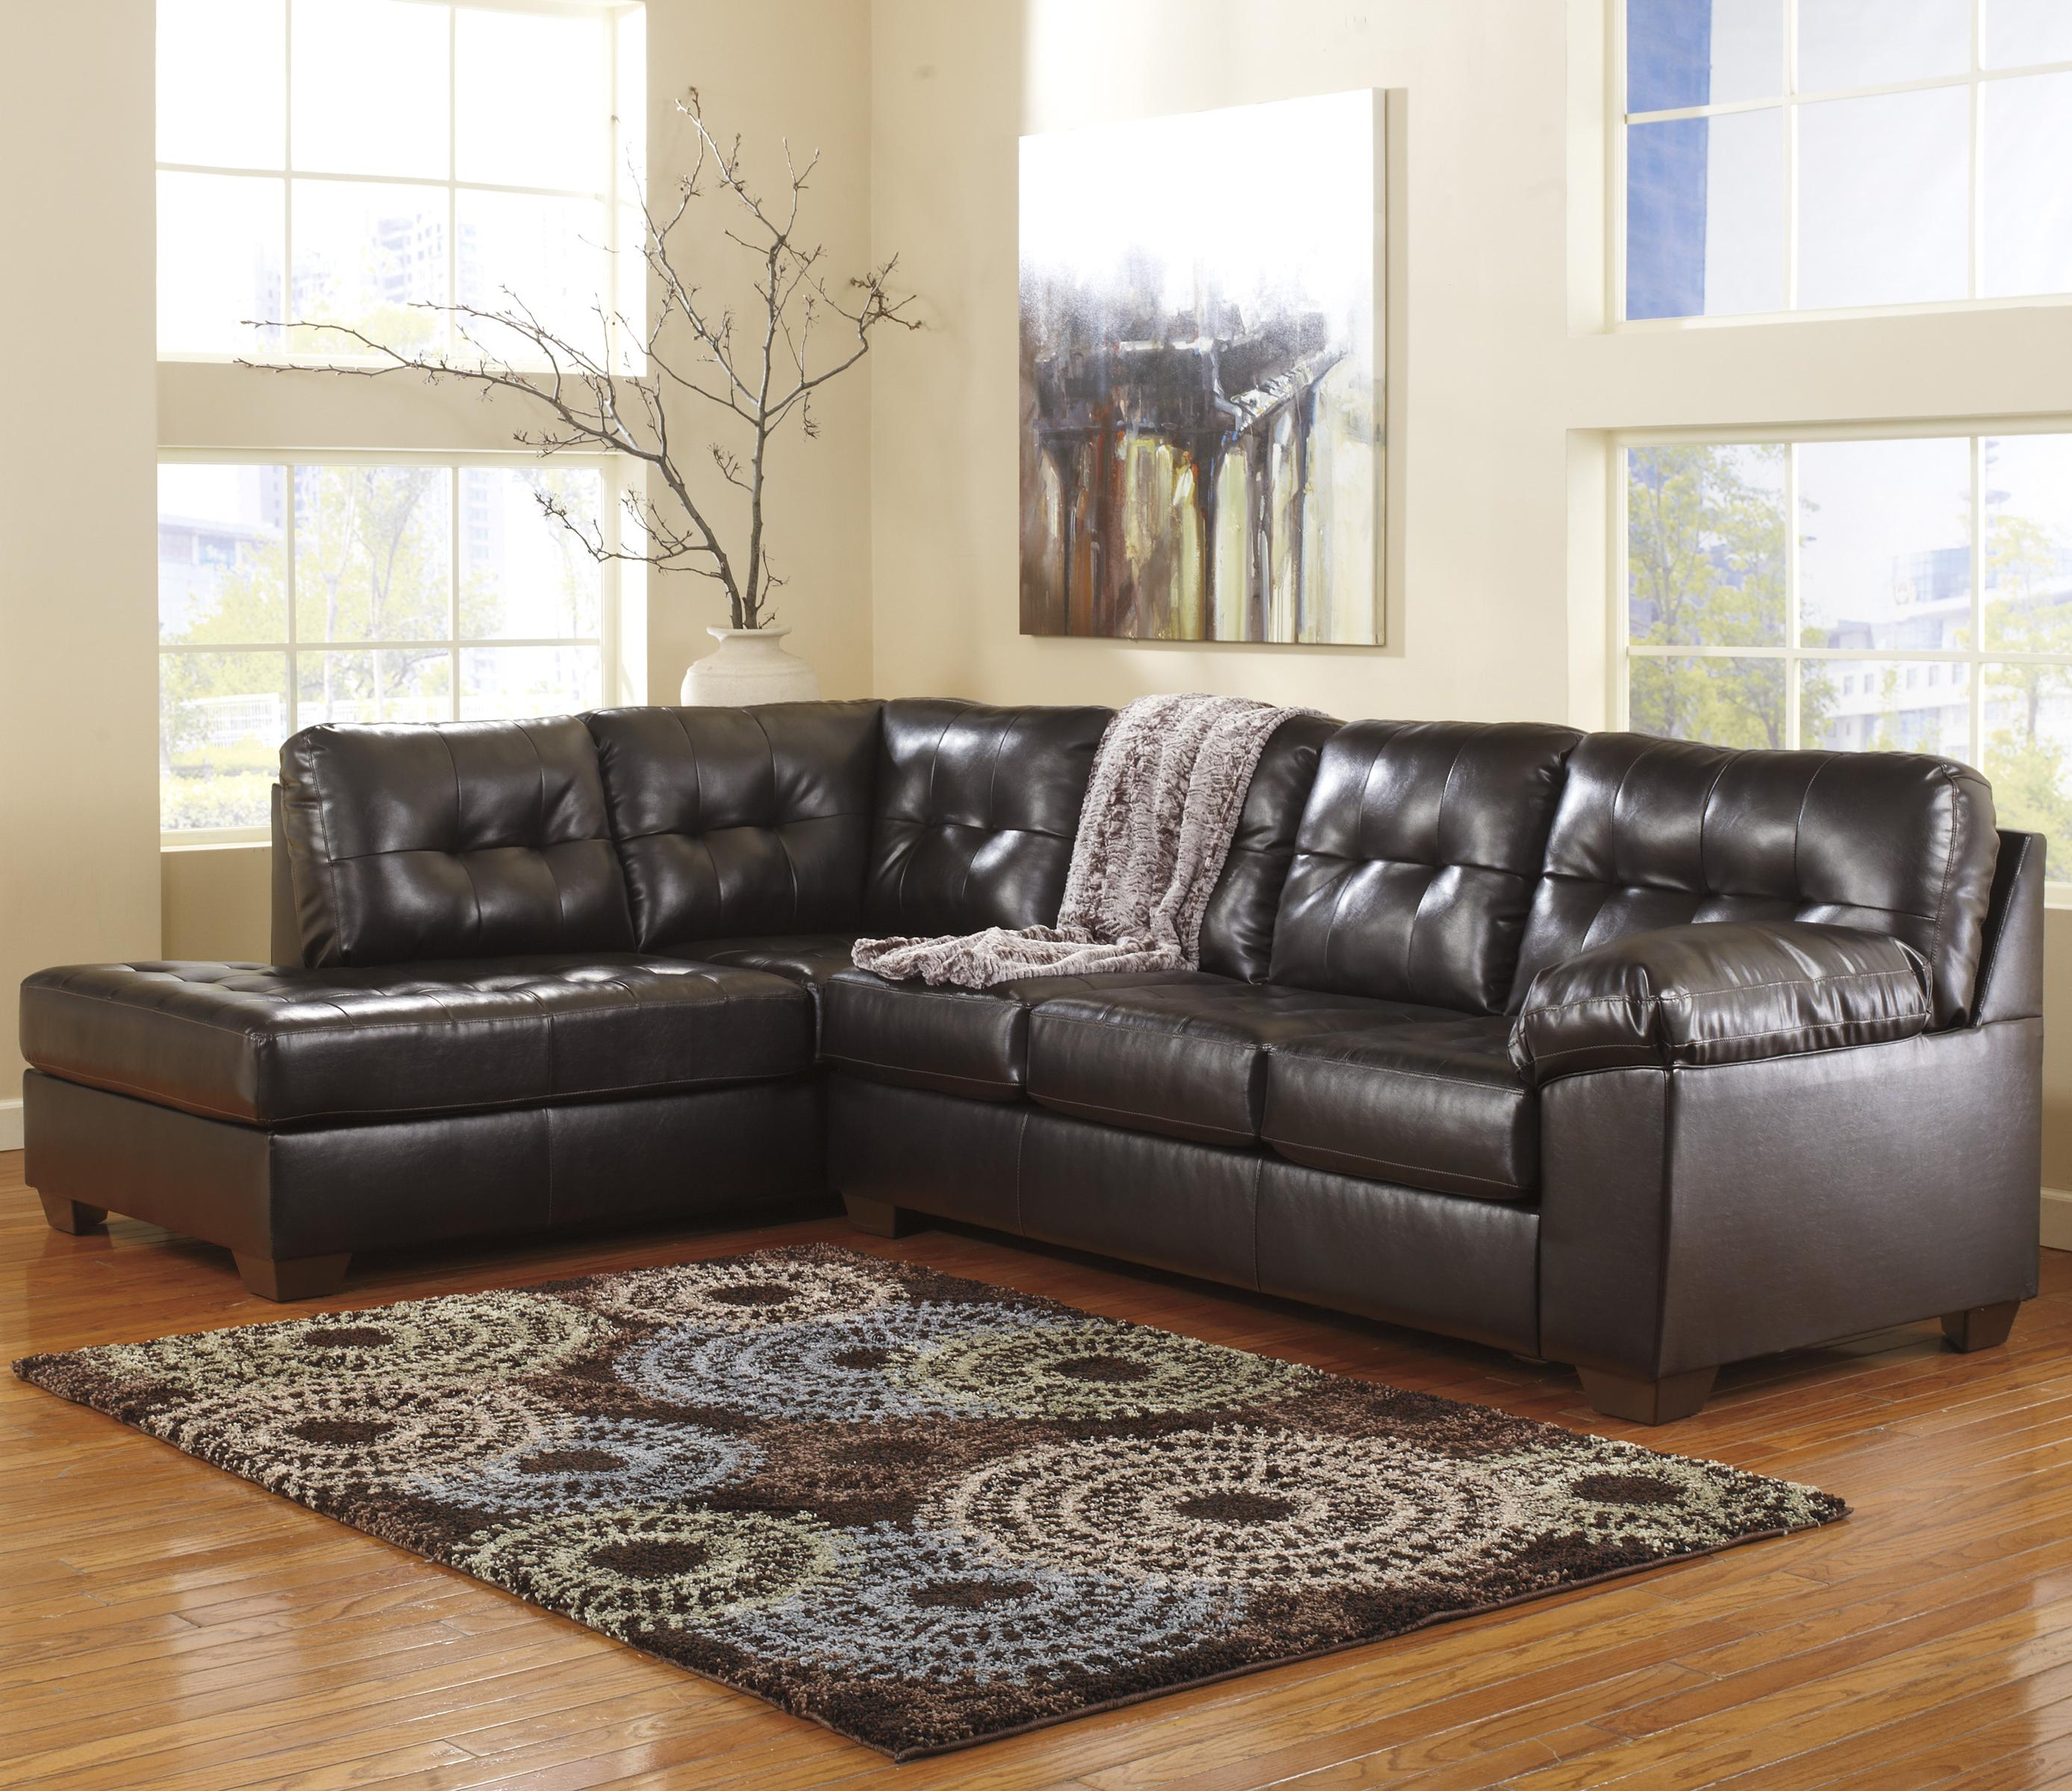 Signature Design by Ashley Alliston DuraBlend® - Chocolate Sectional w/ Left Chaise - Item Number: 2010167+16